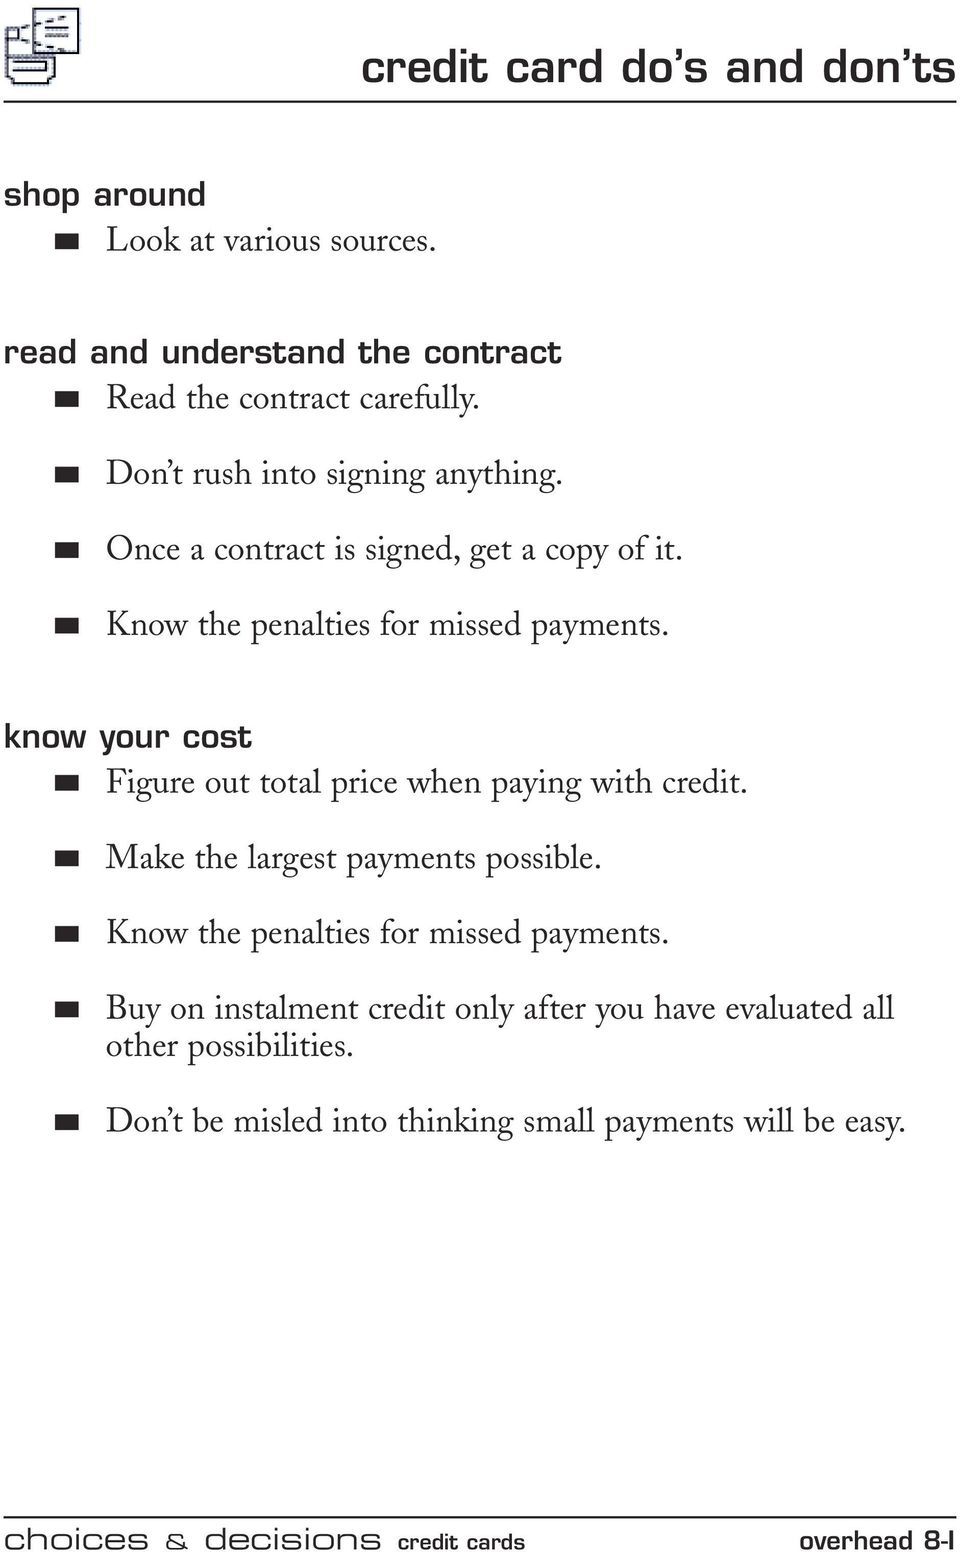 Lesson Eight Credit Cards Overheads Pdf